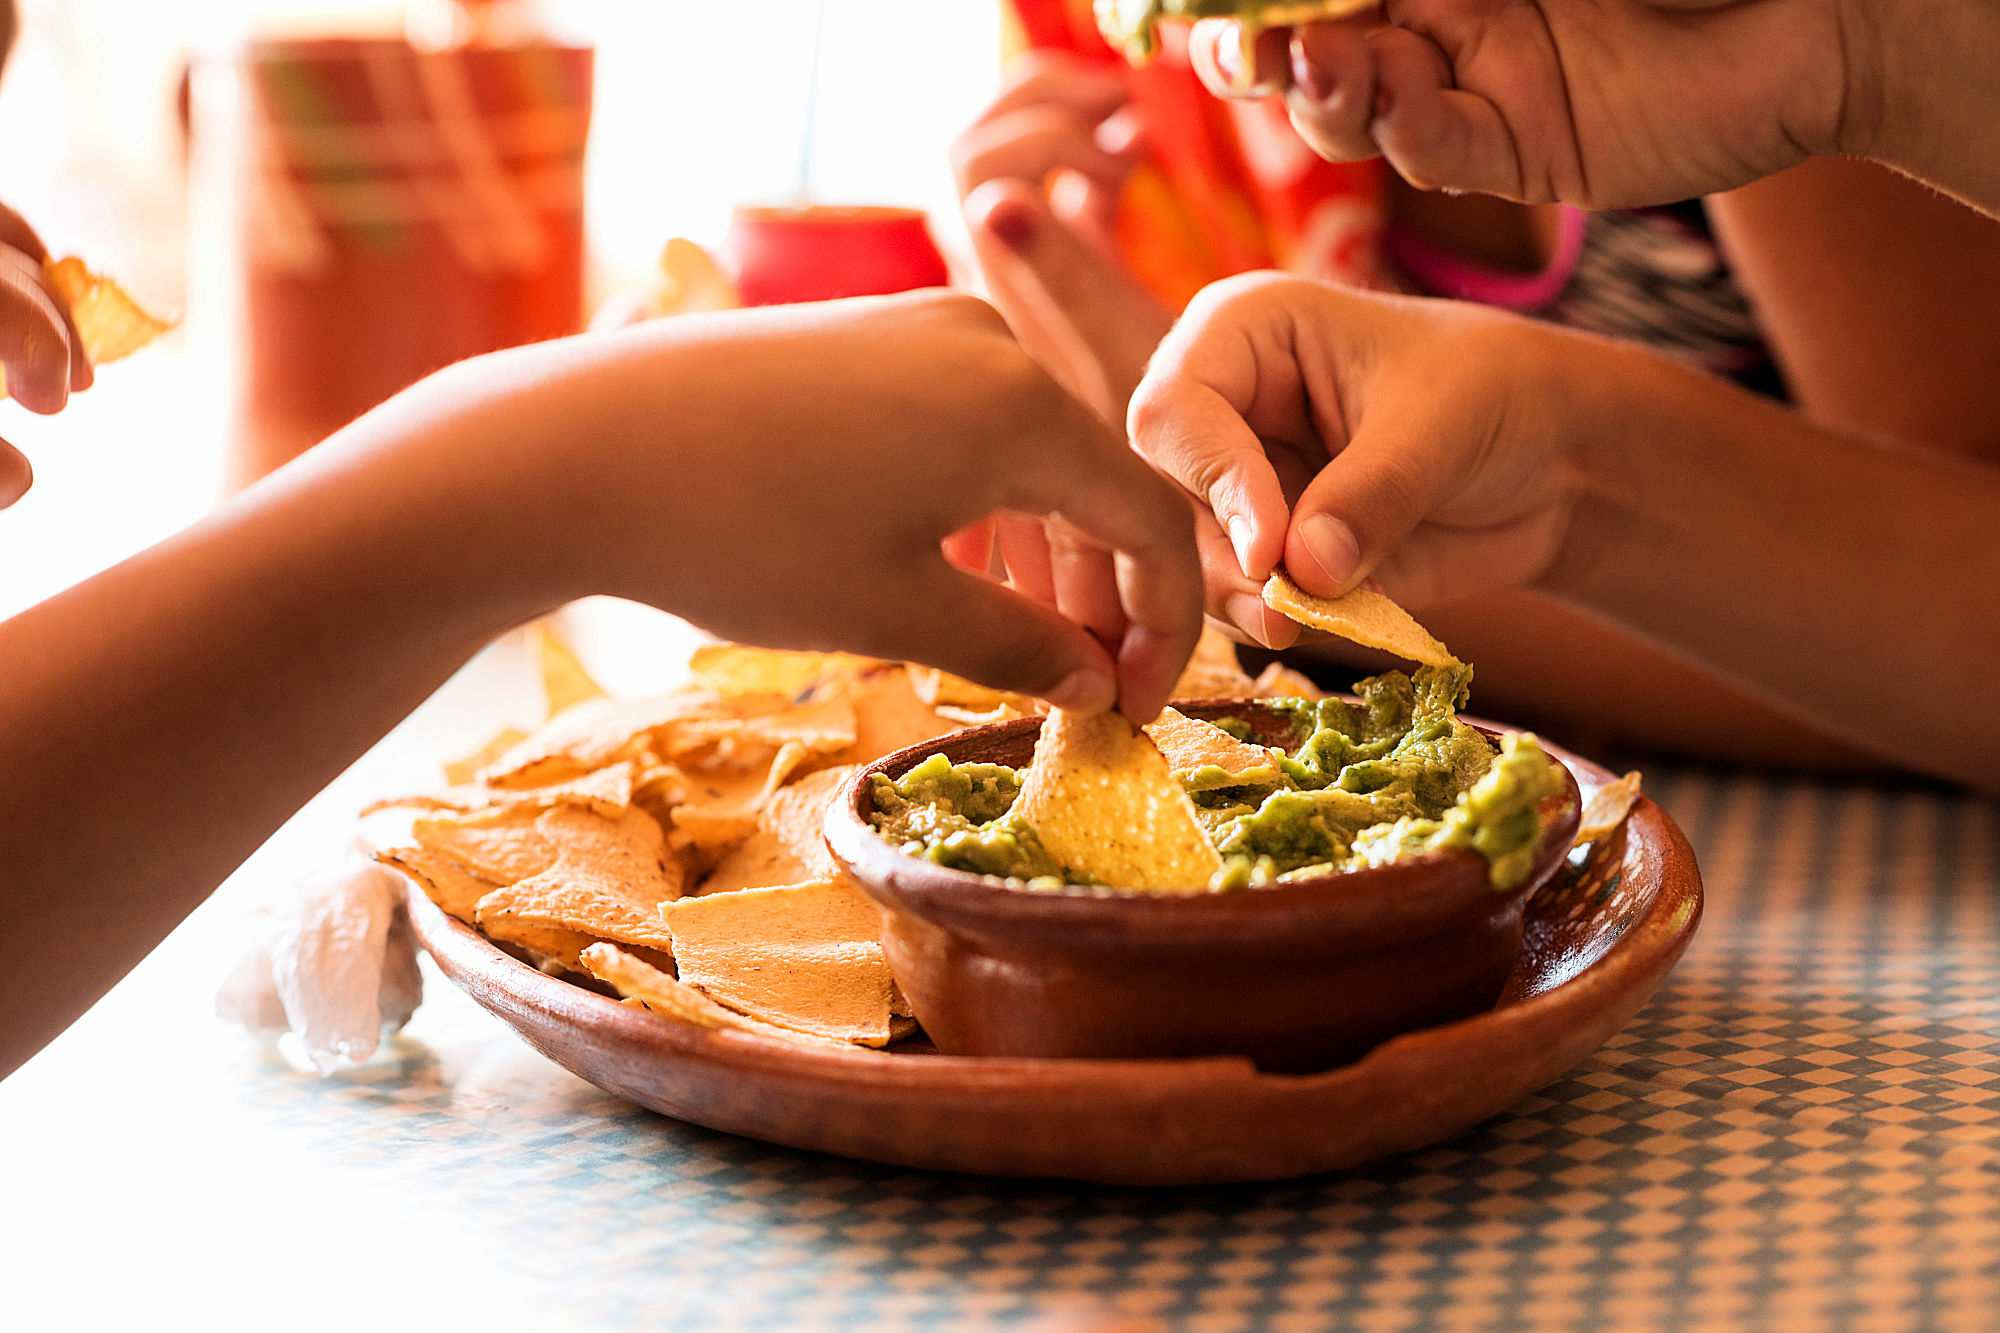 People eating chips and guacamole.